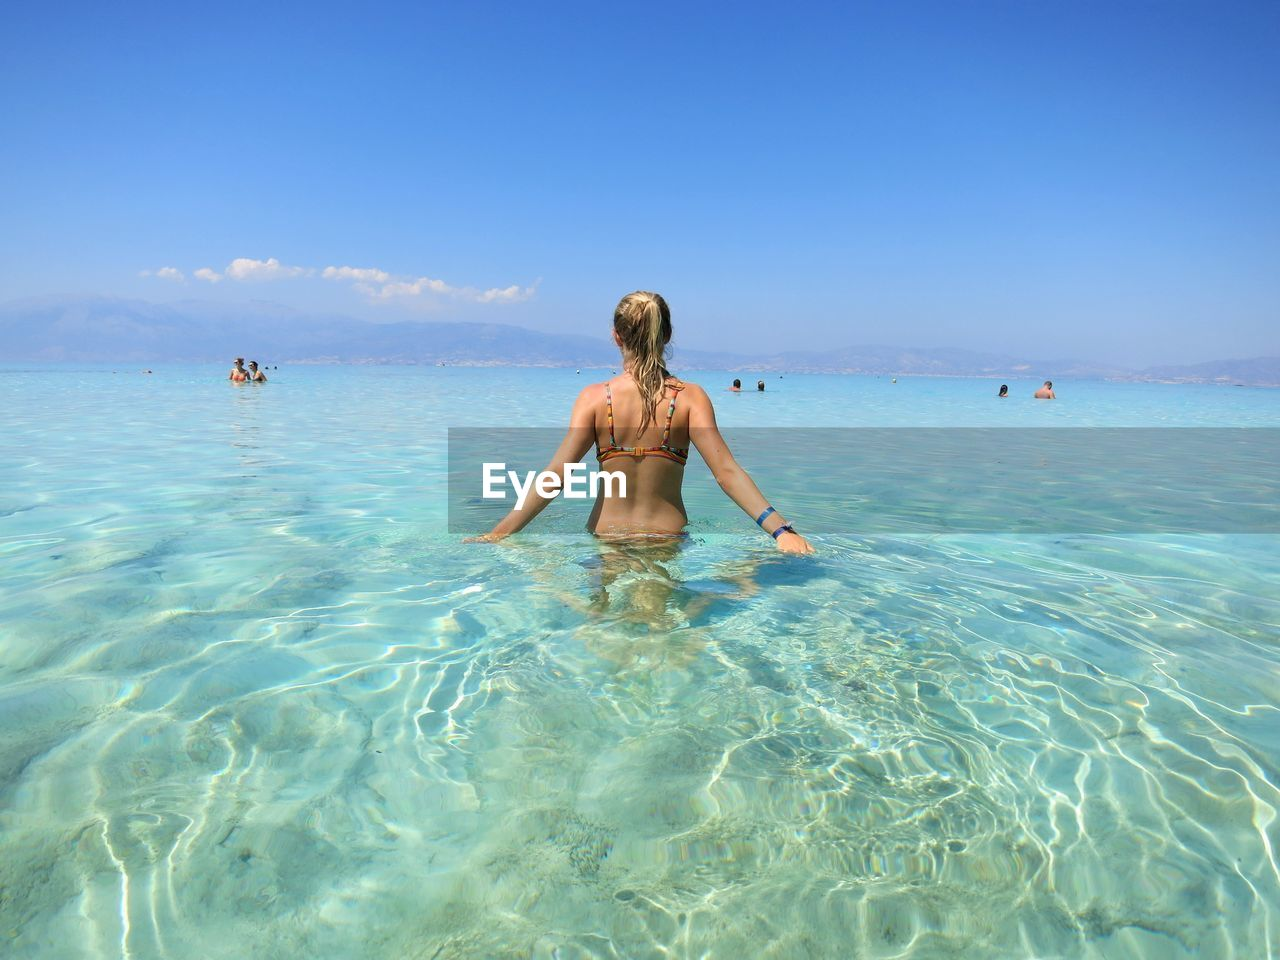 Rear View Of Woman In Sea Against Blue Sky